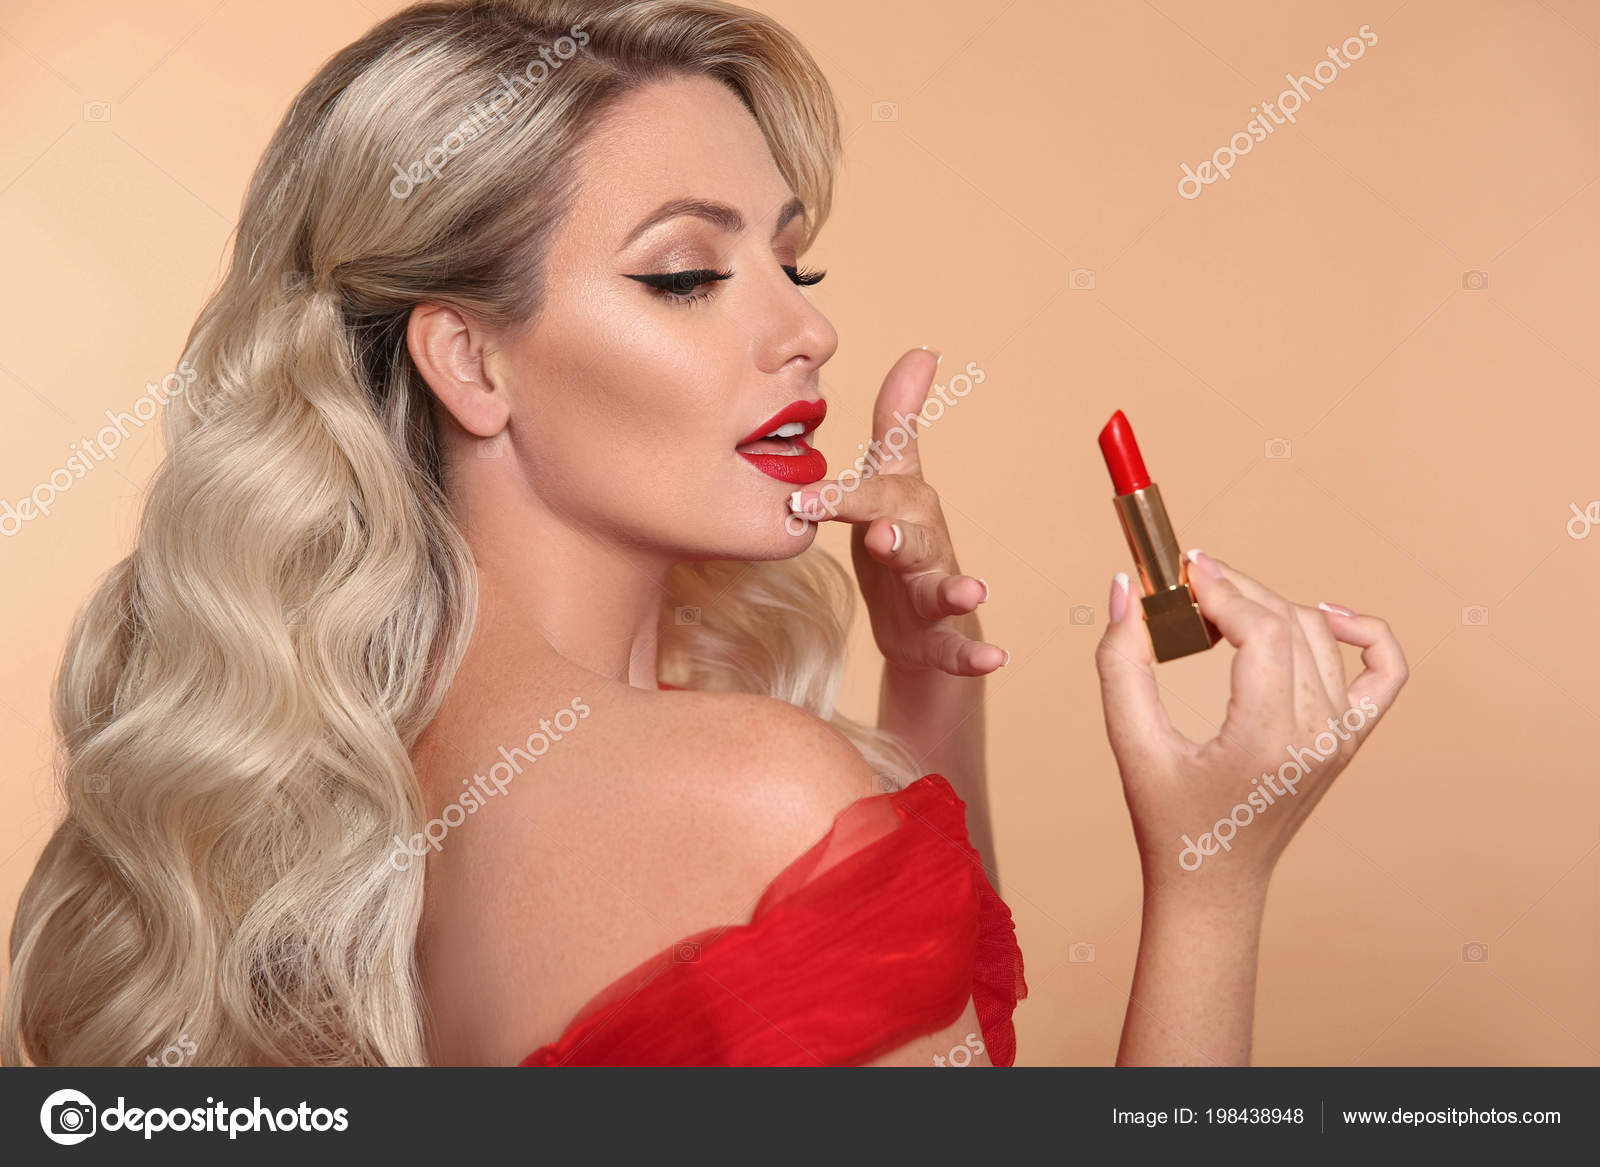 Beauty makeup. Fashion glamour portrait of sexy blonde woman with red lips and long wavy hair style holding lipstick over beige studio background.